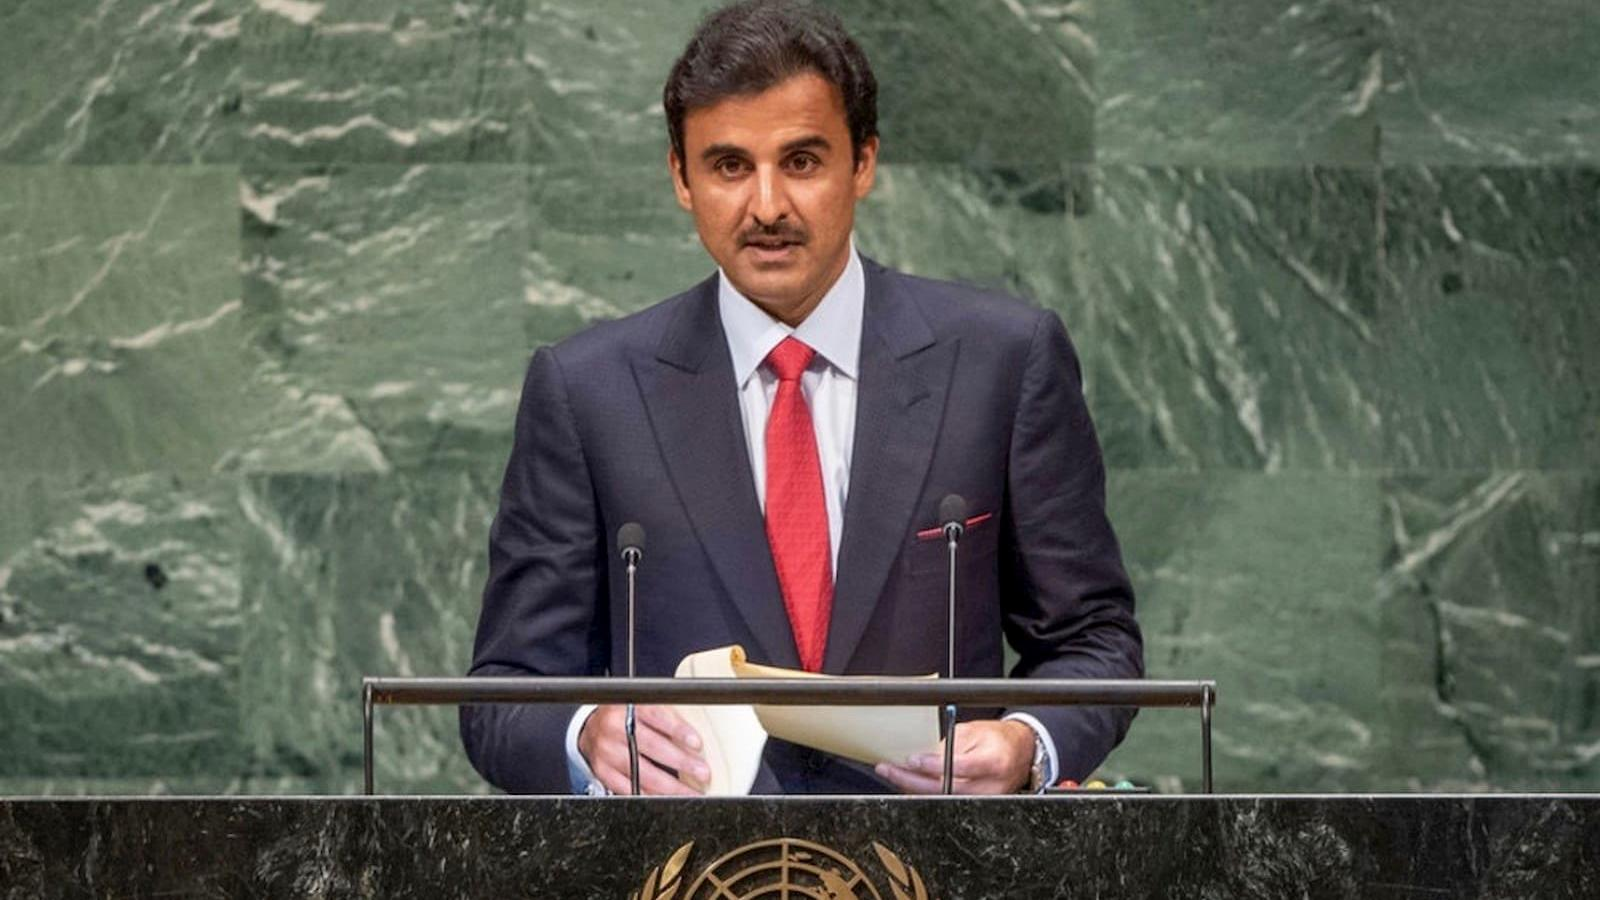 HH the Amir to address UN General Assembly, meet French president and British PM